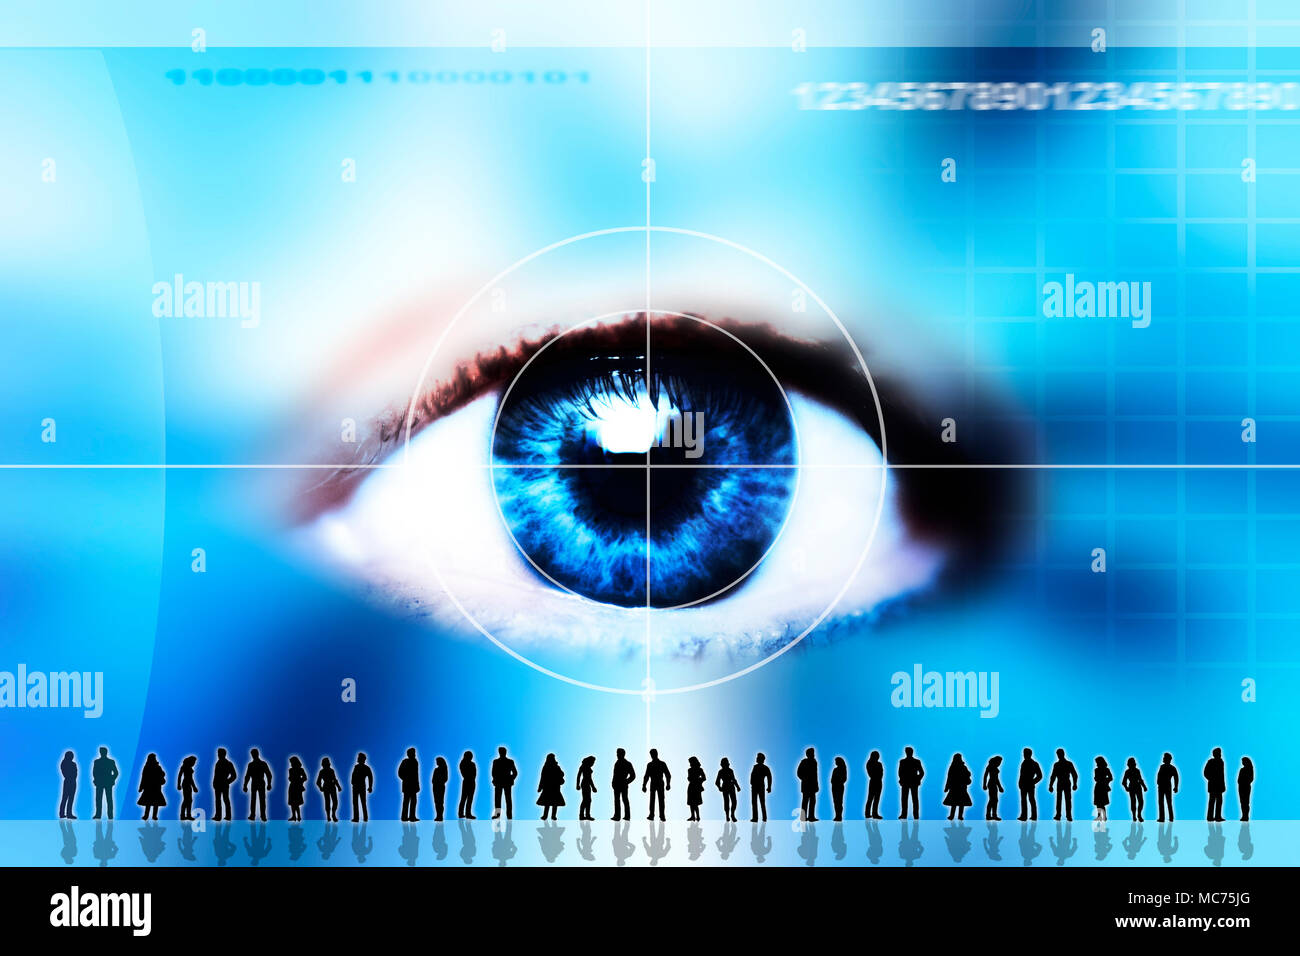 a conceptual image for Big brother and privacy concerns - Stock Image